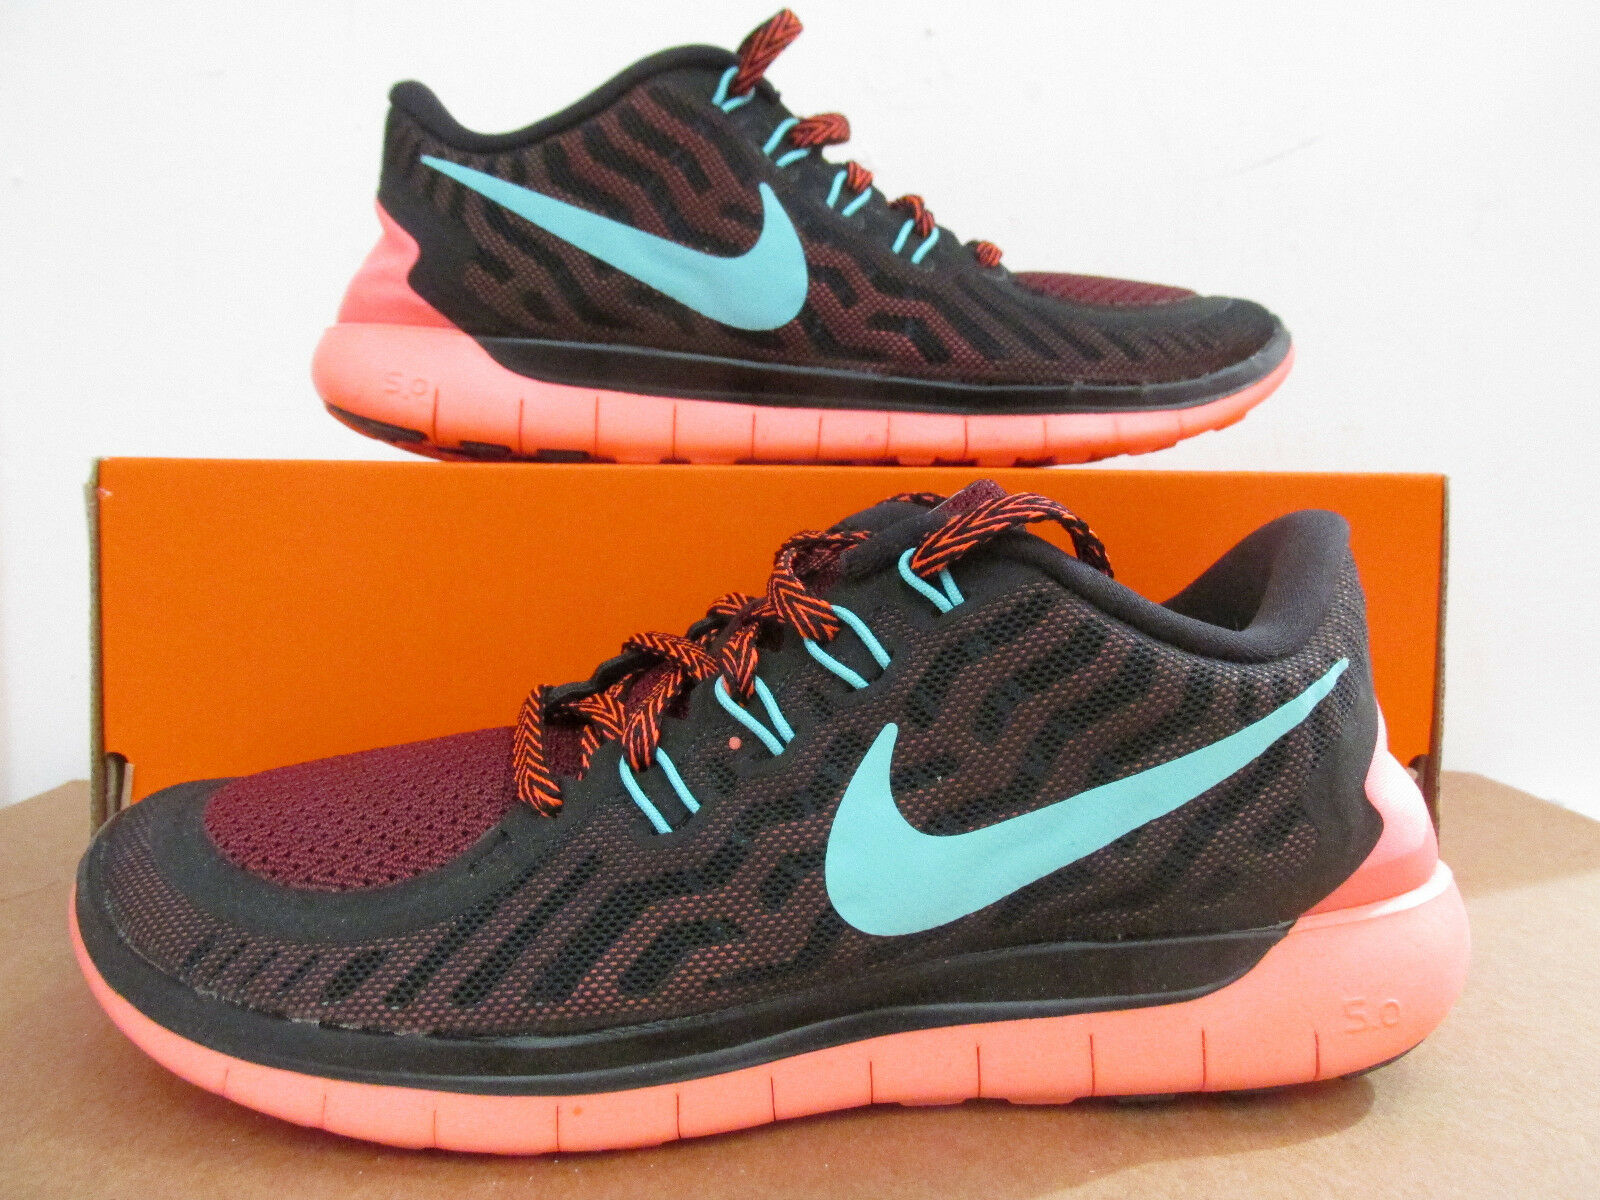 nike free 5.0 womens running trainers 724383 004 sneakers shoes CLEARANCE